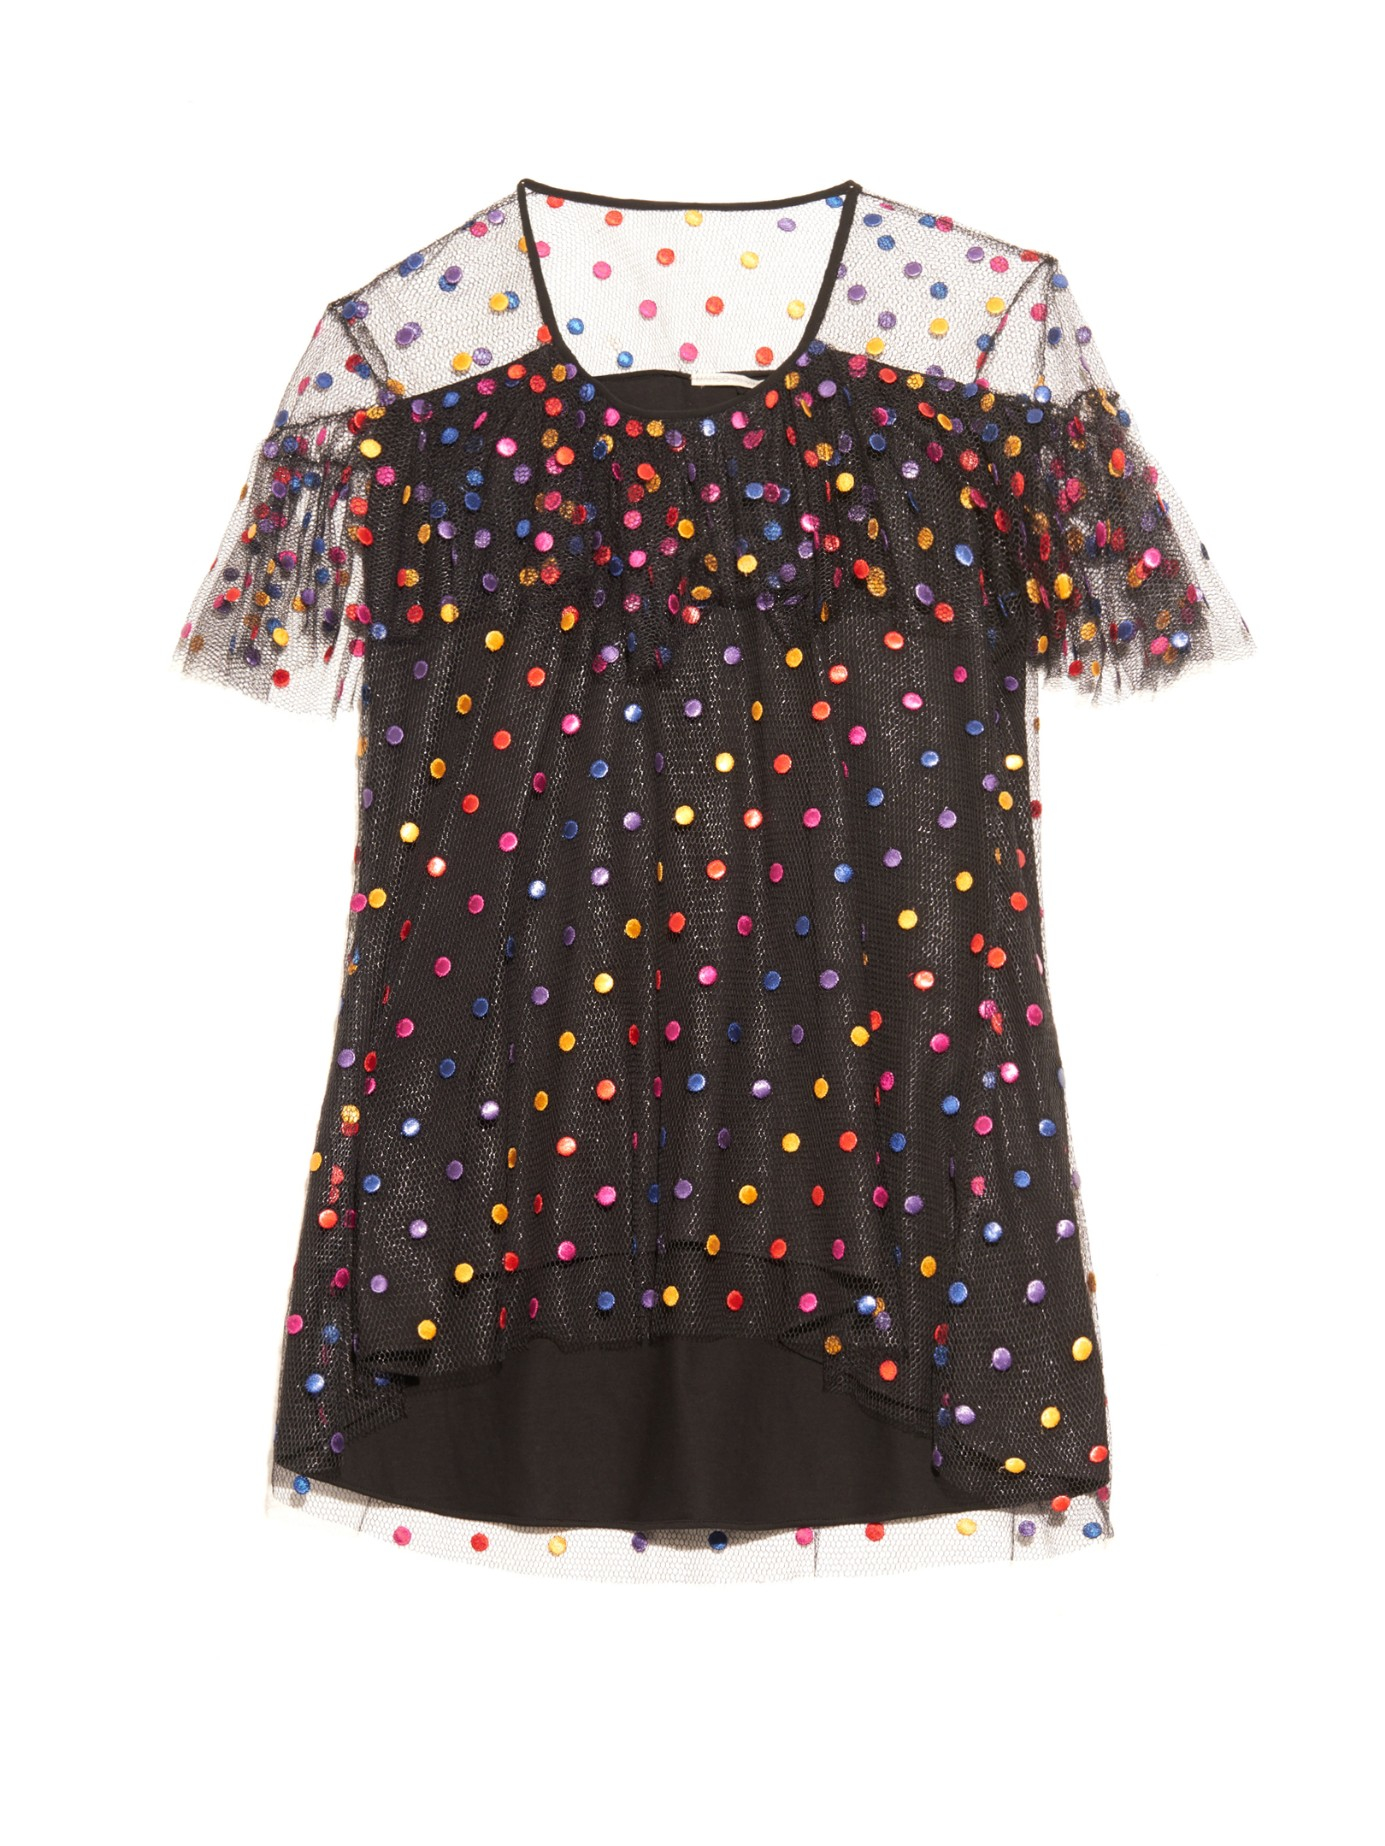 Marco De Vincenzo Polka Dot Embroidered Tulle Top In Black